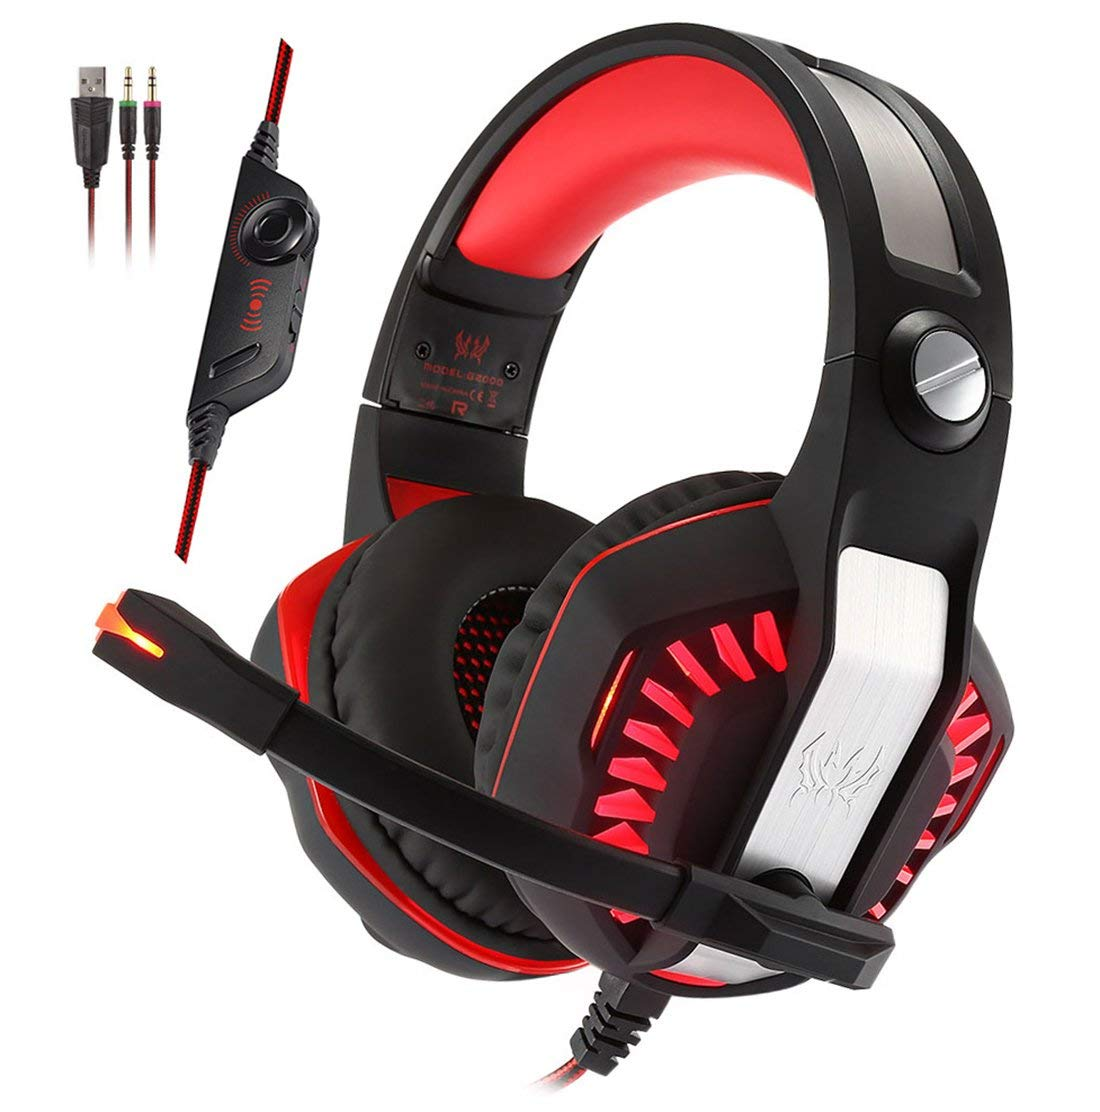 KOTION EACH G2000 2.0 Vibration Over-ear Gaming Headset with Mic 3.5mm, 2.2m Cable, Volume Control, LED Light Noise Reduction Headphones for Computer Games, PS4, Laptops, Tablet, Smartphones (Red)